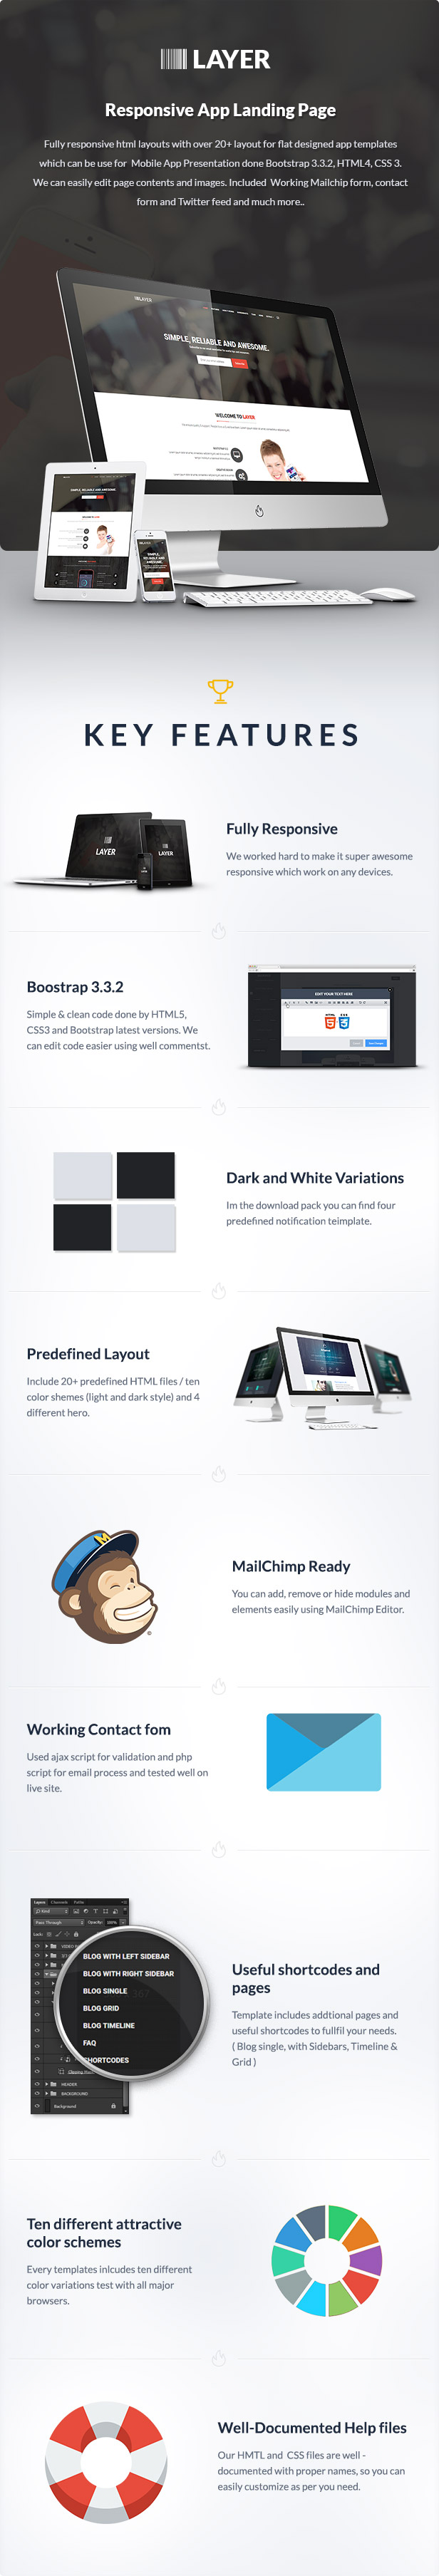 Key feature image for Layer Responsive App Landing Page